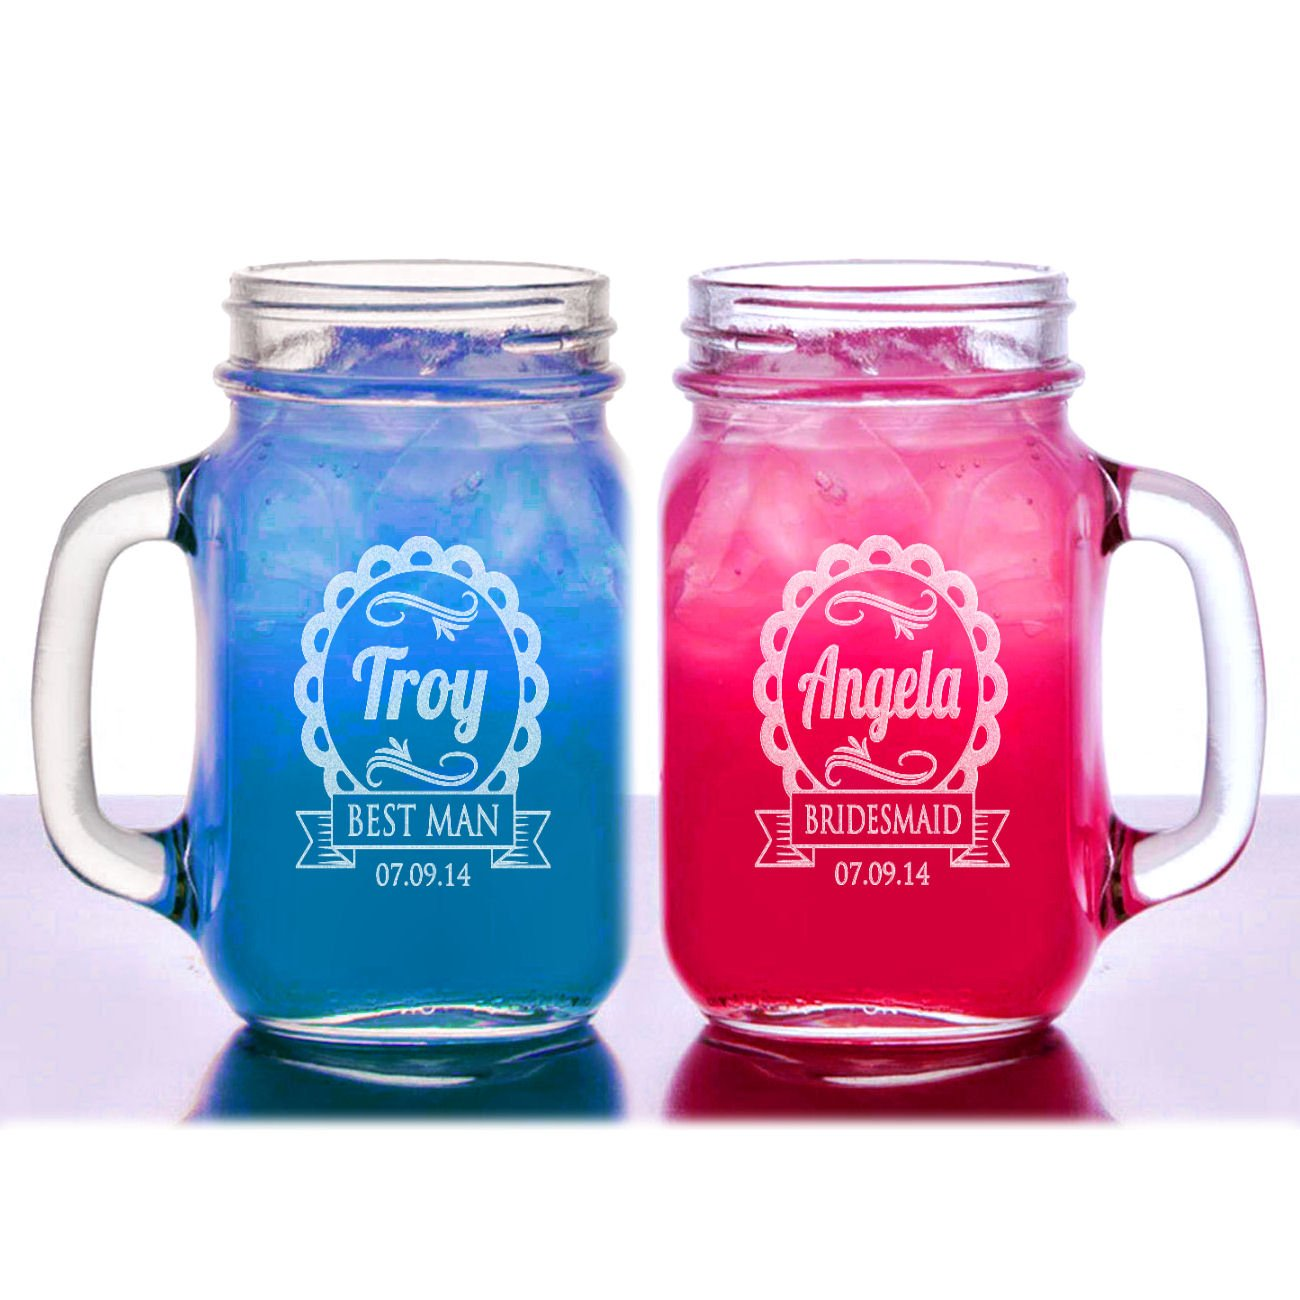 1 Cute Personalized Wedding Mason Jar Bridesmaid Gift Groomsmen Gifts Drinking Mugs with Handle Engraved Custom Etched with Name and Date for Wedding ...  sc 1 st  Amazon.com & Amazon.com | 1 Cute Personalized Wedding Mason Jar Bridesmaid Gift ...